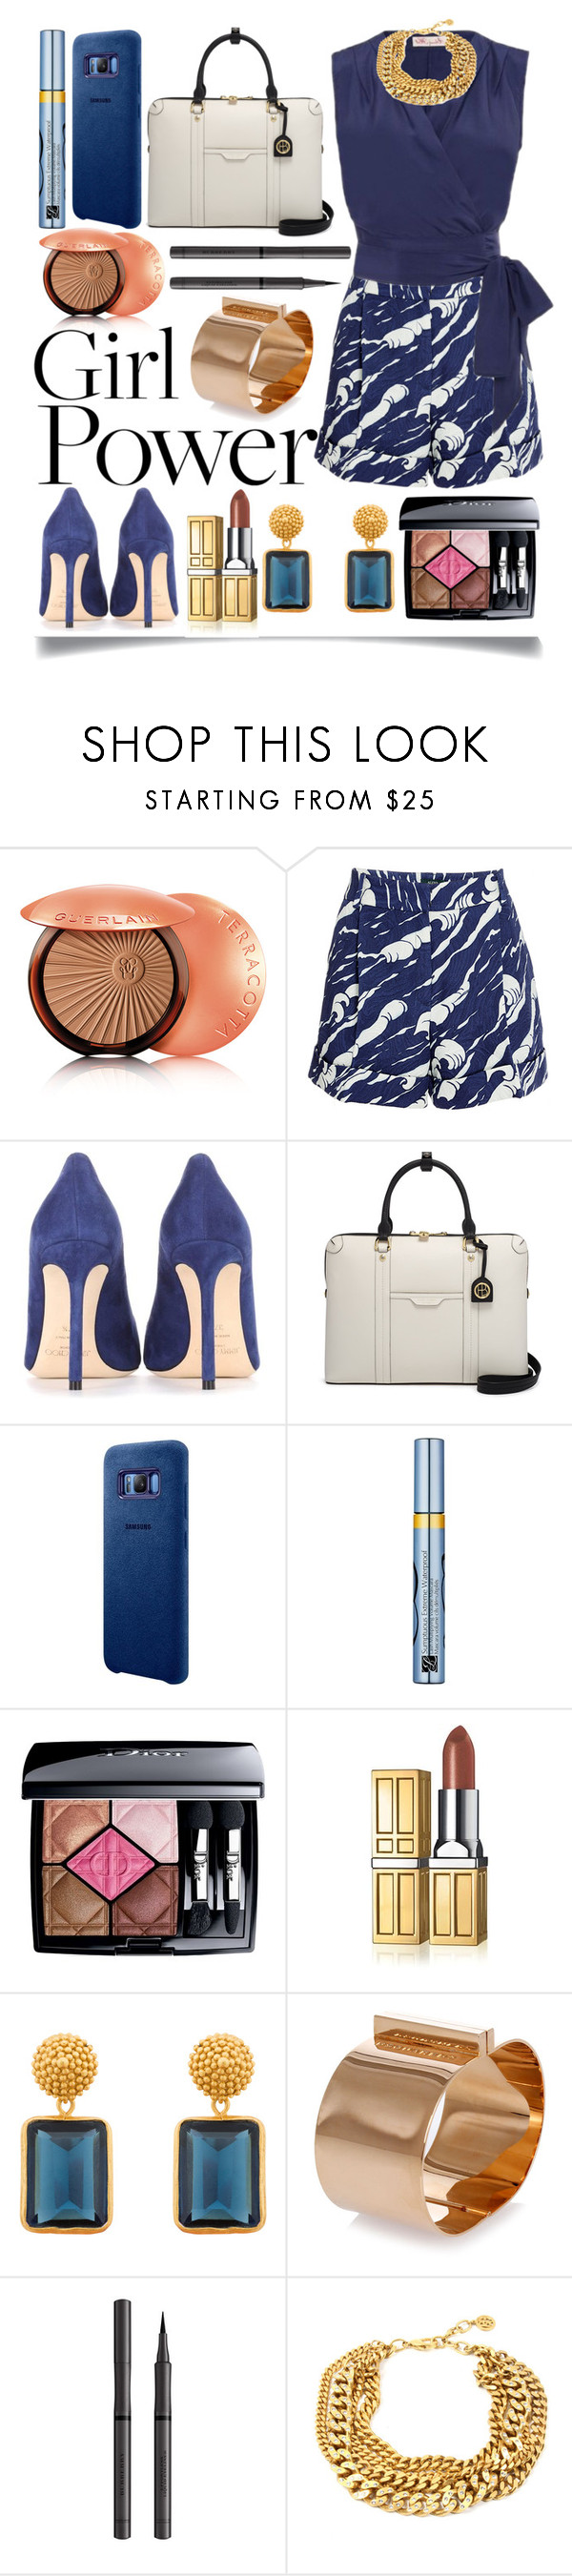 """My Power Look"" by ittie-kittie ❤ liked on Polyvore featuring Guerlain, Jimmy Choo, Henri Bendel, Samsung, Estée Lauder, Christian Dior, Elizabeth Arden, Julie Vos, Dsquared2 and Burberry"